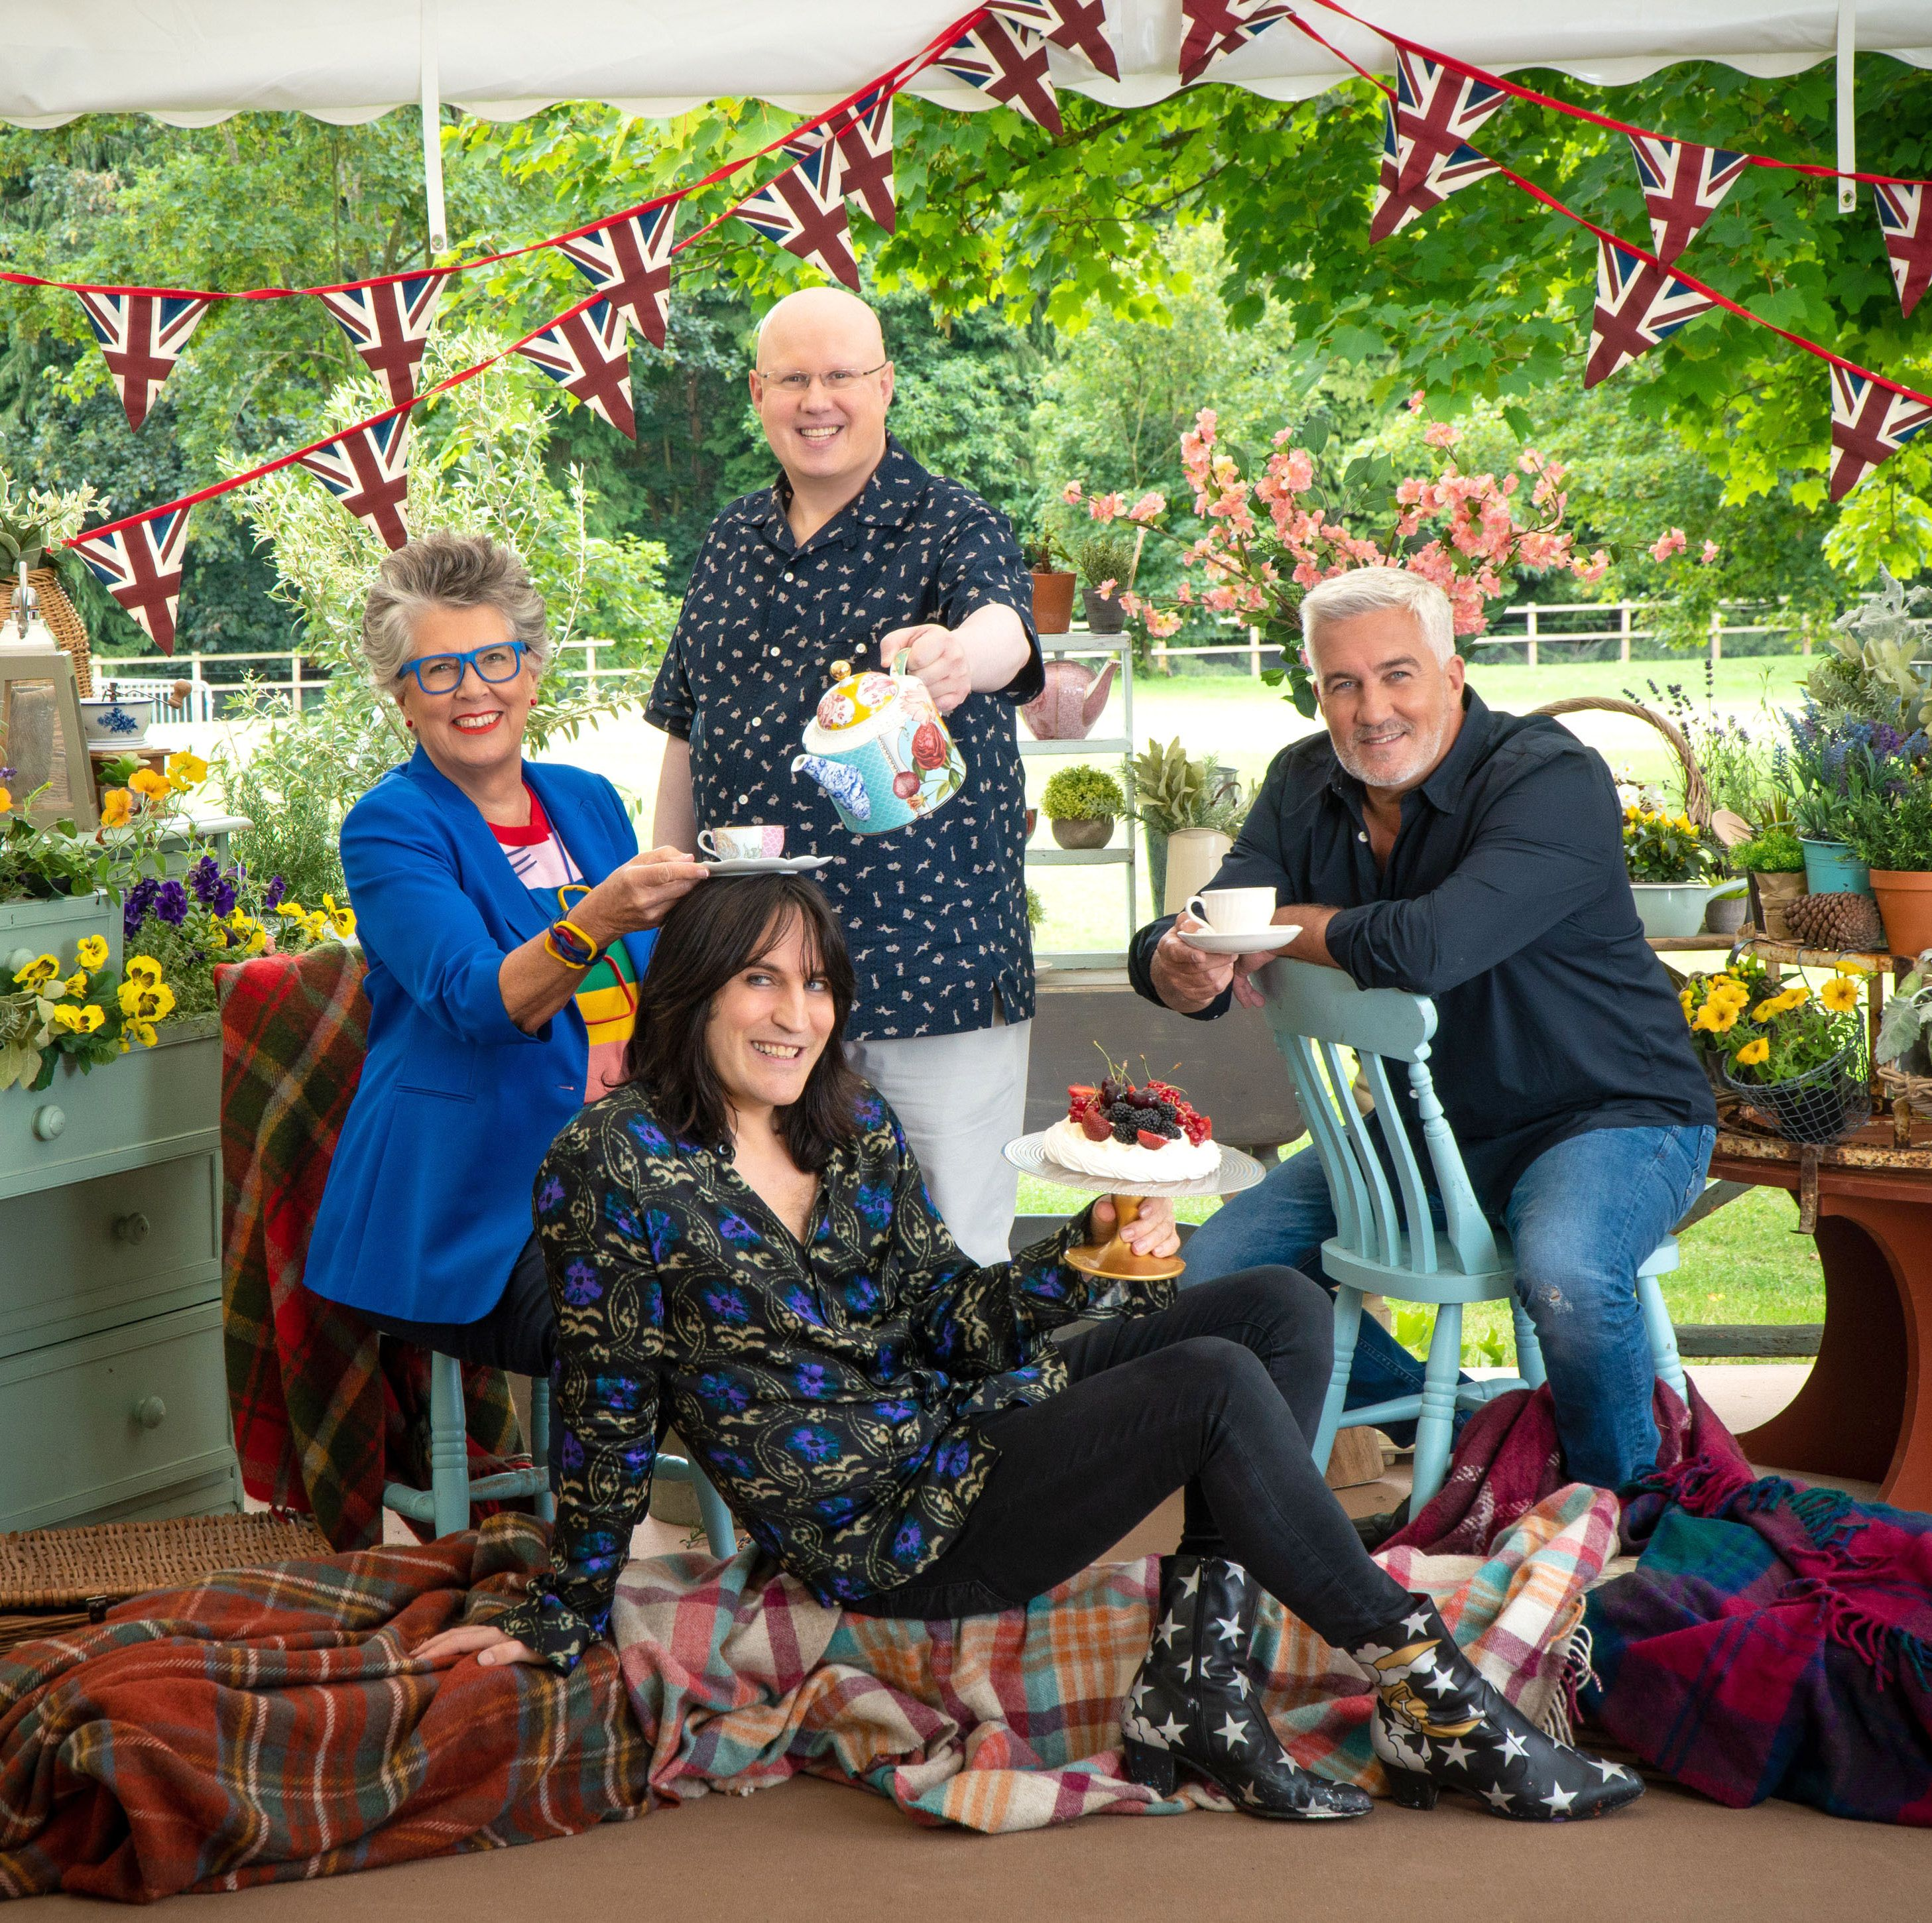 The Great British Bake-Off Season 12 Is Coming to Netflix This Month